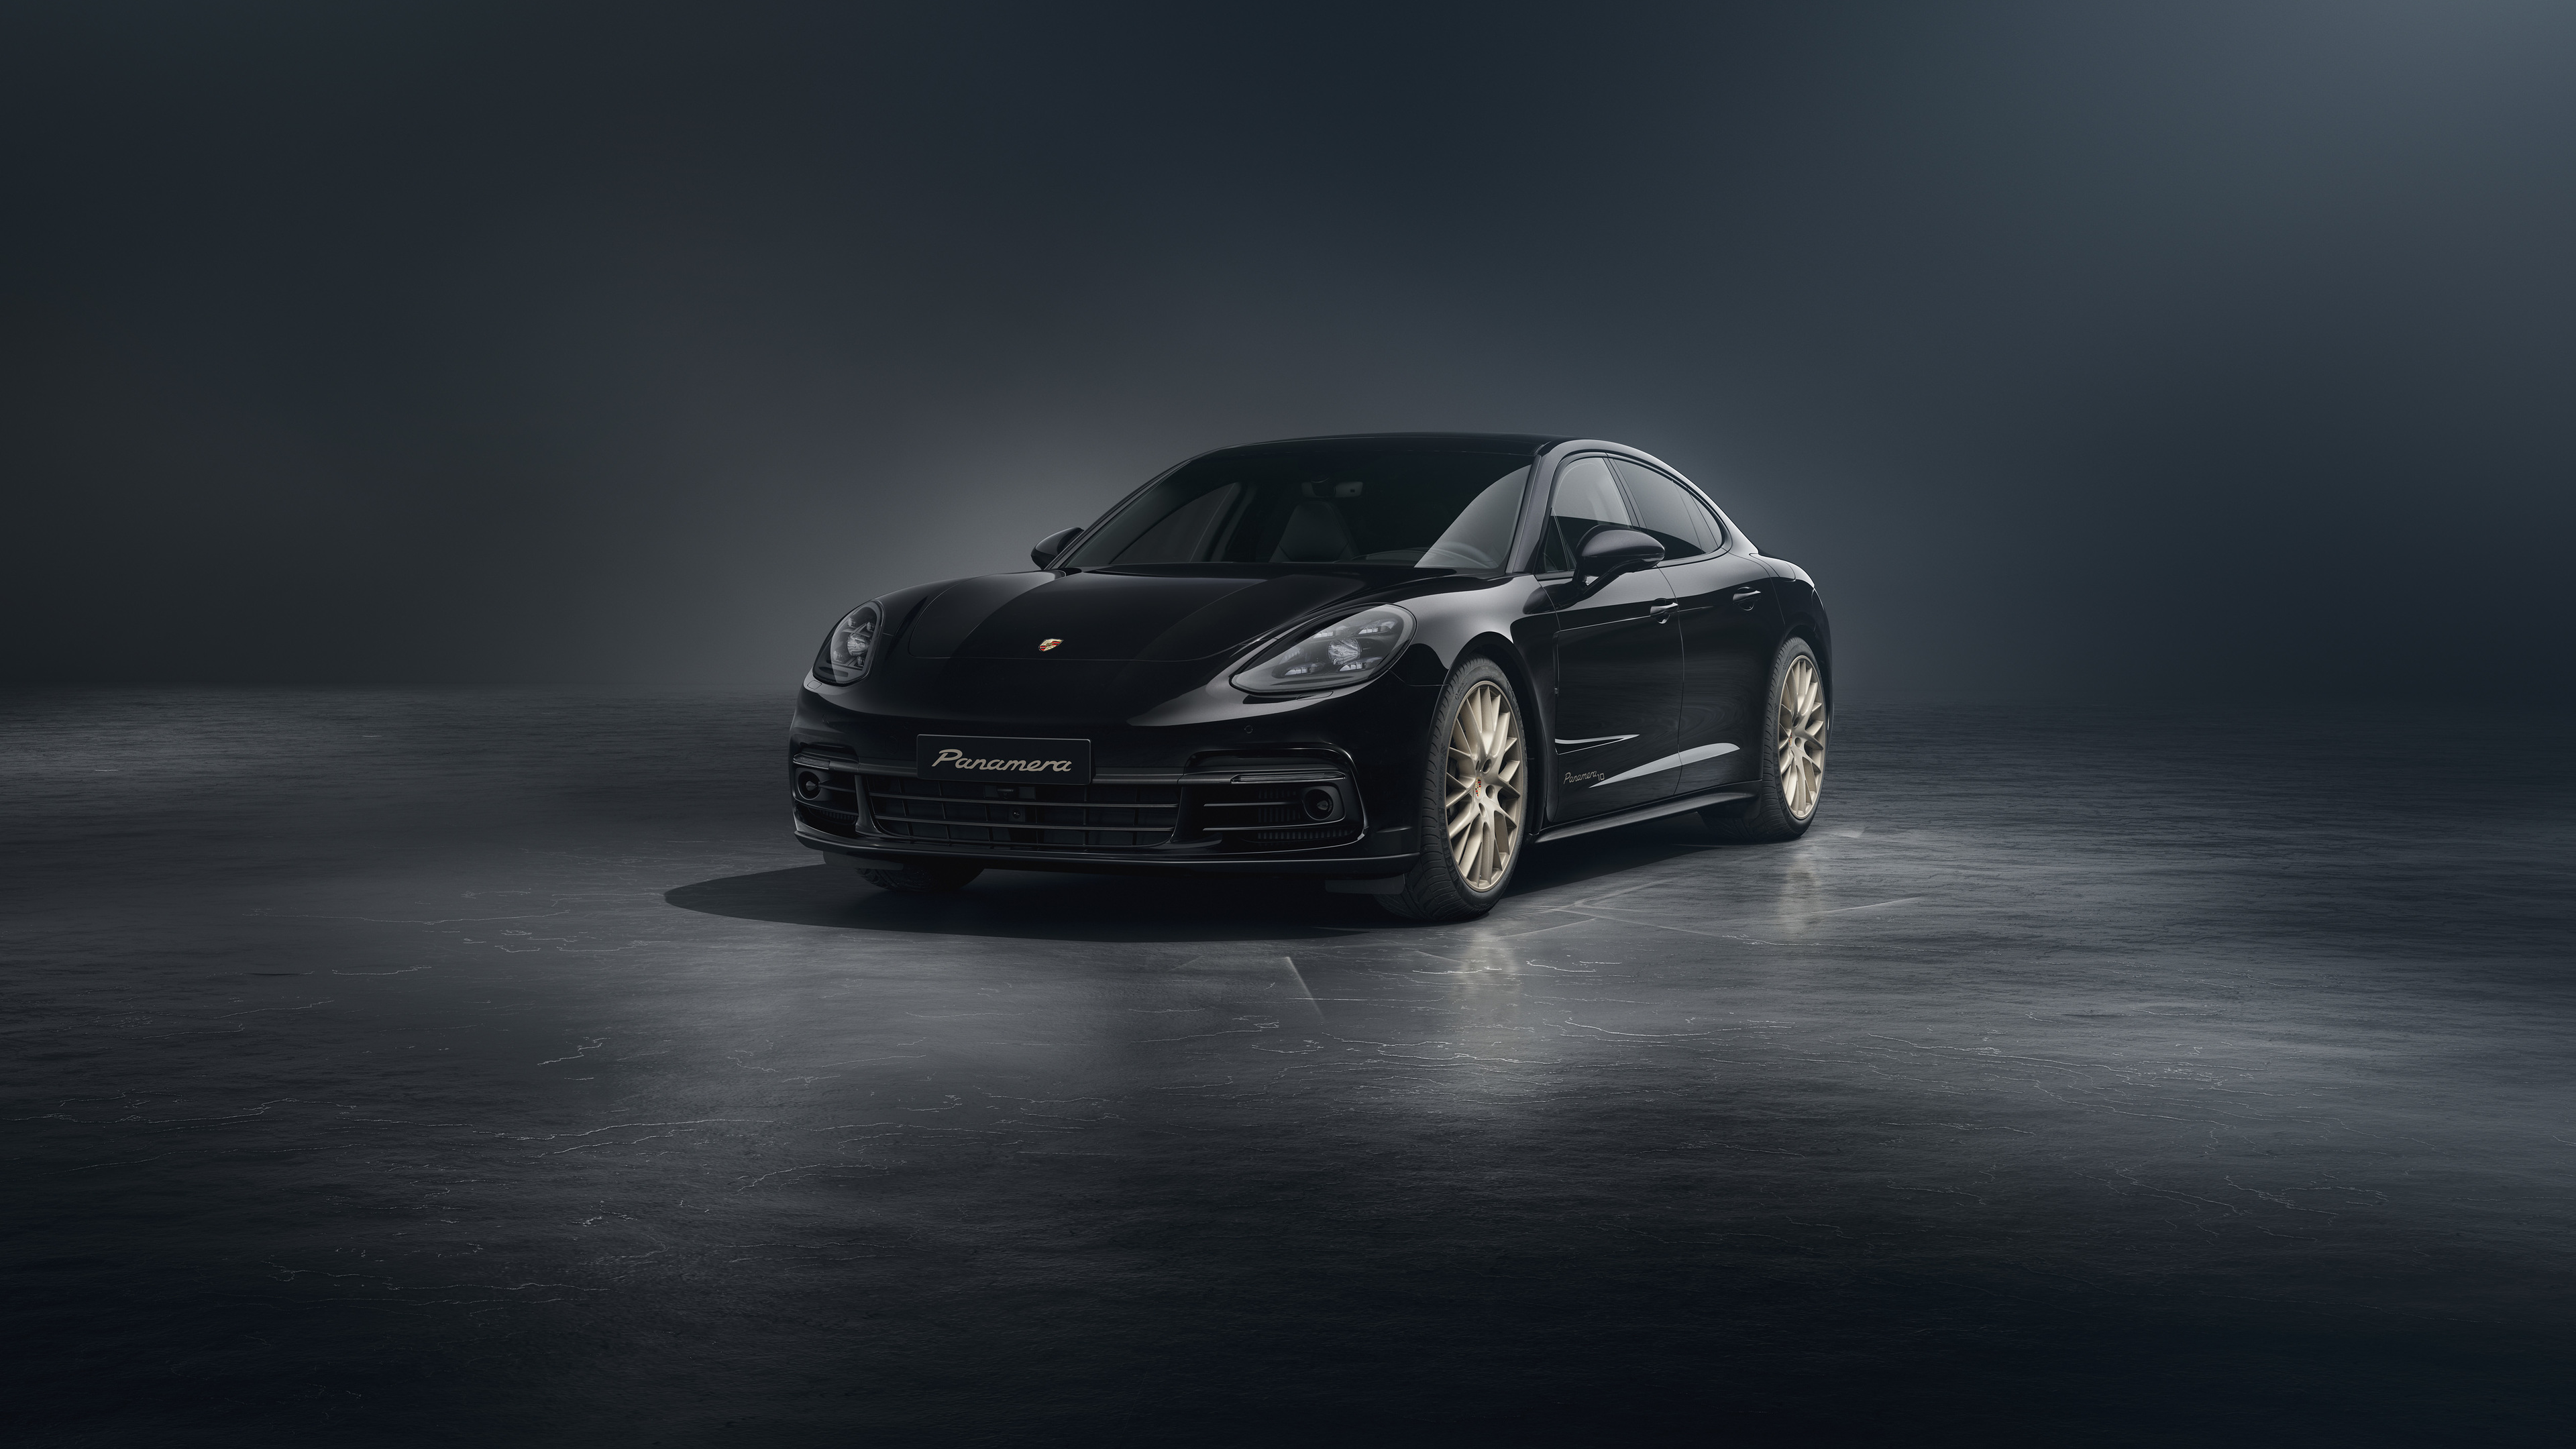 porsche panamera 4 edition 10 jahre 2019 1570919189 - Porsche Panamera 4 Edition 10 Jahre 2019 - porsche wallpapers, porsche panamera wallpapers, hd-wallpapers, cars wallpapers, 5k wallpapers, 4k-wallpapers